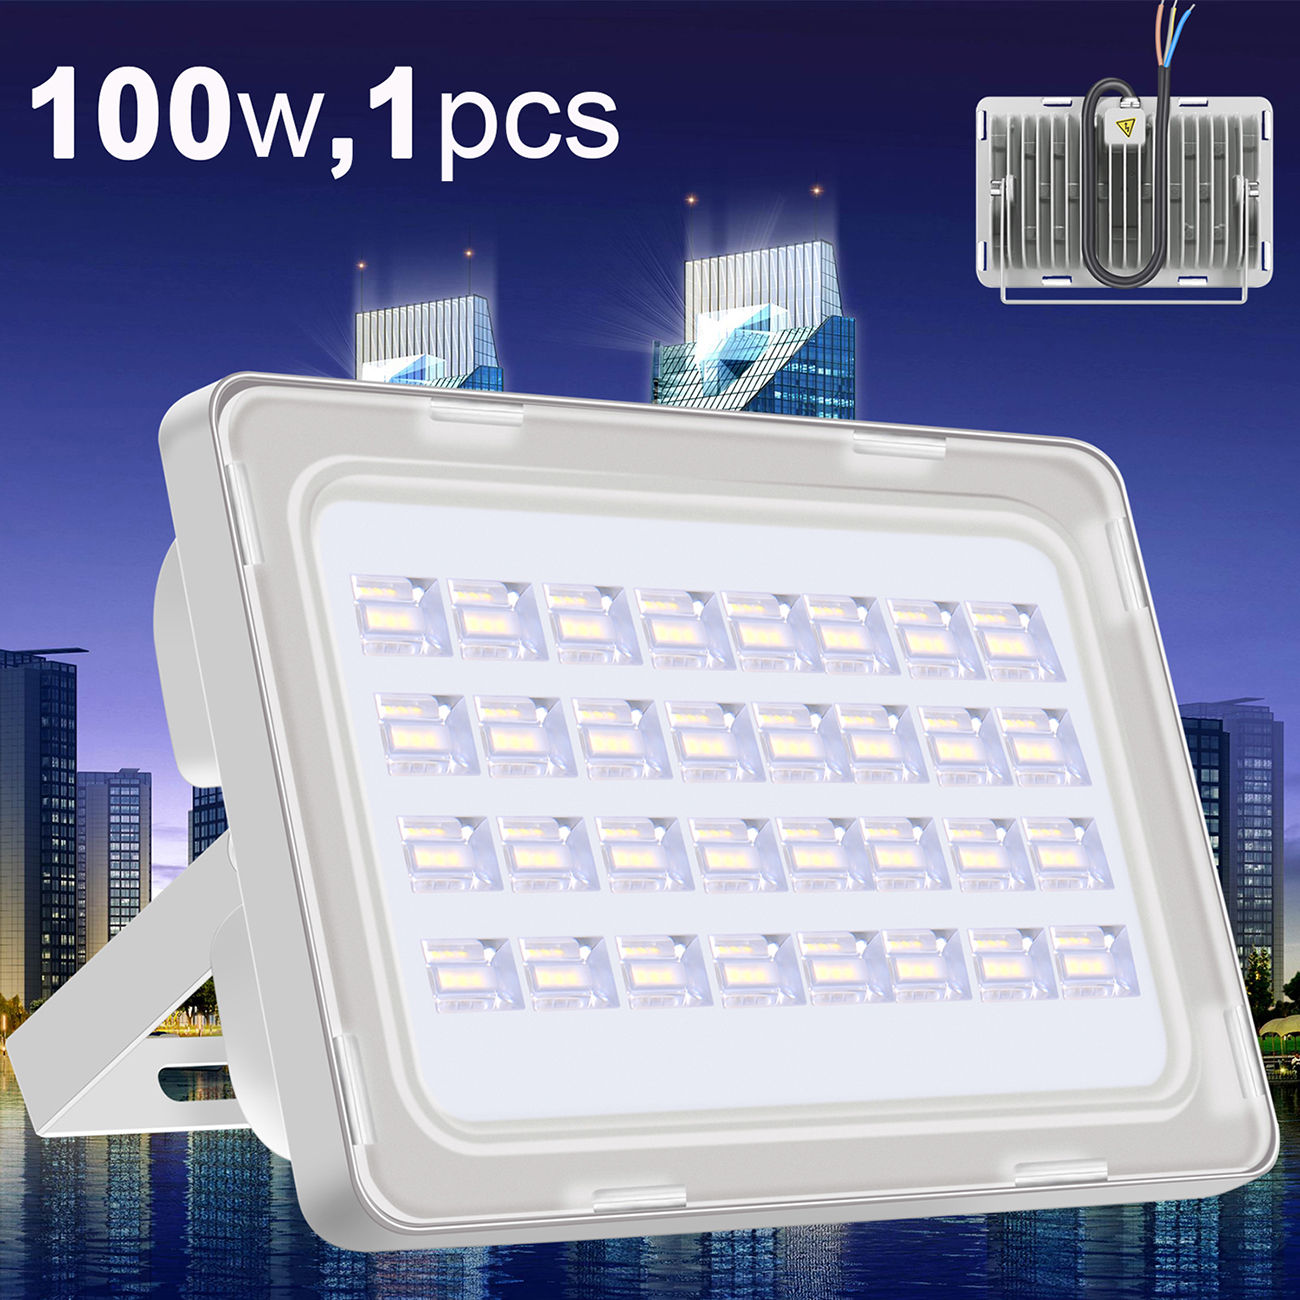 Viugreum 100W LED Floodlight Outdoor Landscape Lamp Cool White Waterproof